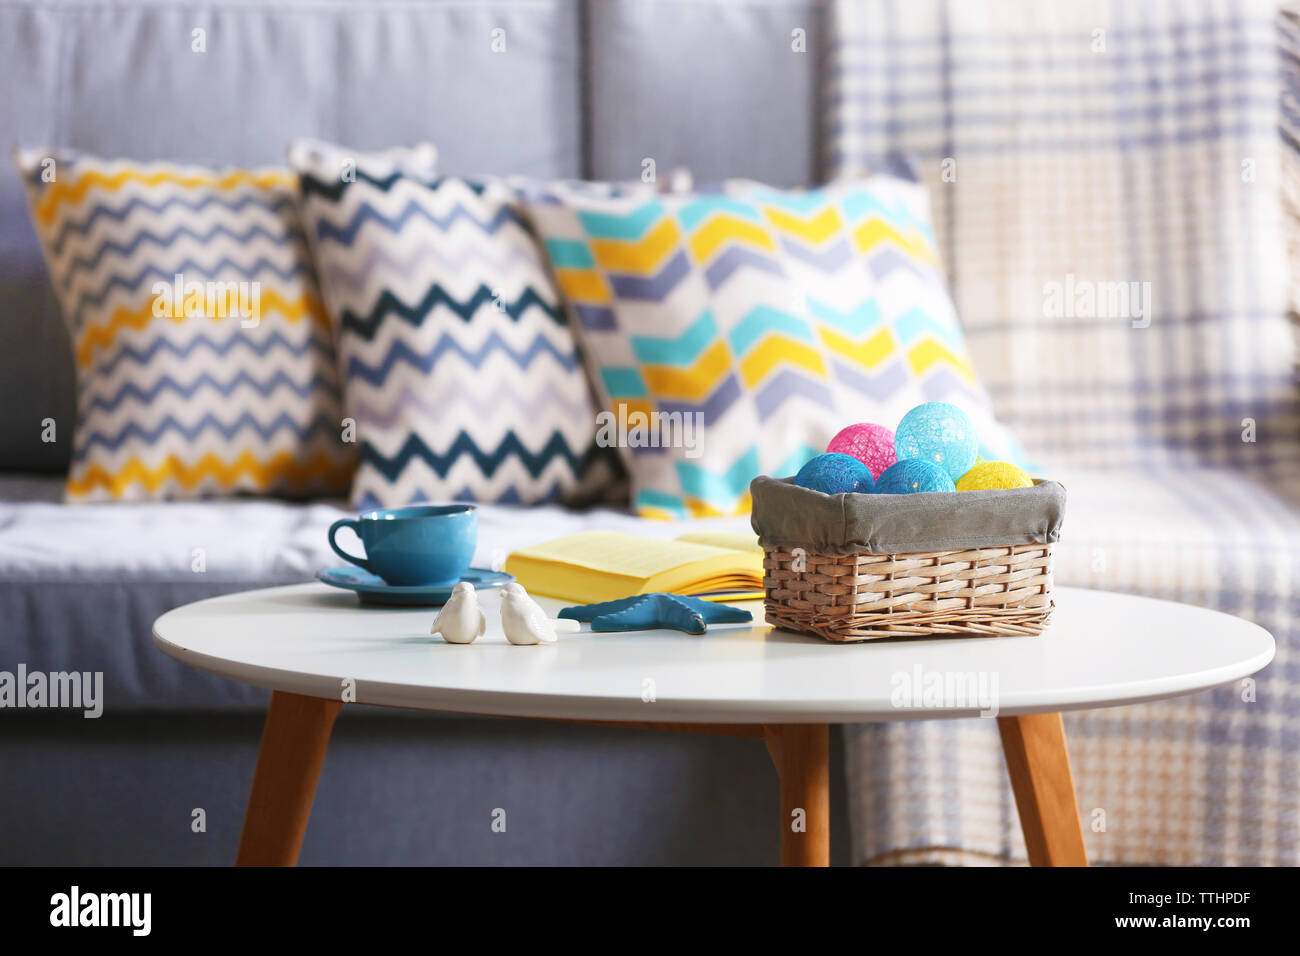 Design interior with sofa and table, indoors - Stock Image